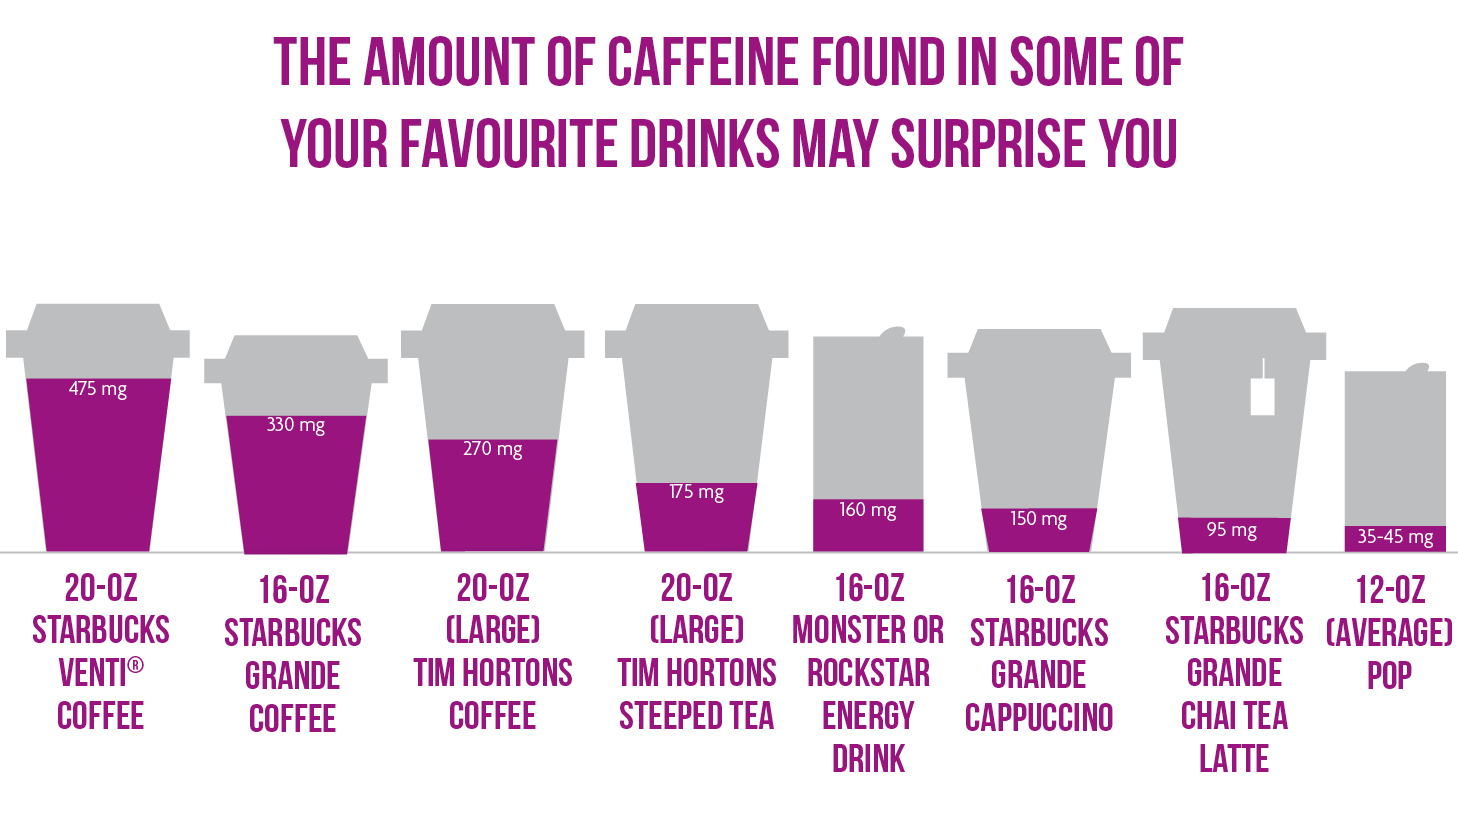 The amount of caffeine found in some of your favorite drinks may surprise you. A 20-ounce Starbucks Venti® coffee has 475 milligrams of caffeine. A 16-ounce Starbucks grande coffee has 270 milligrams of caffeine. A 20-ounce (large) Tim Hortons coffee has 270 milligrams of caffeine. A 20-ounce (large) Tim Hortons steeped tea has 175 milligrams of caffeine. A 16-ounce Monster or Rockstar energy drink has 160 milligrams of caffeine. A 16-ounce Starbucks grande cappuccino has 150 milligrams of caffeine. A 16-ounce grande Starbucks chai tea latte has 95 milligrams of caffeine. A 12-ounce average soda has 35-45 milligrams of caffeine.